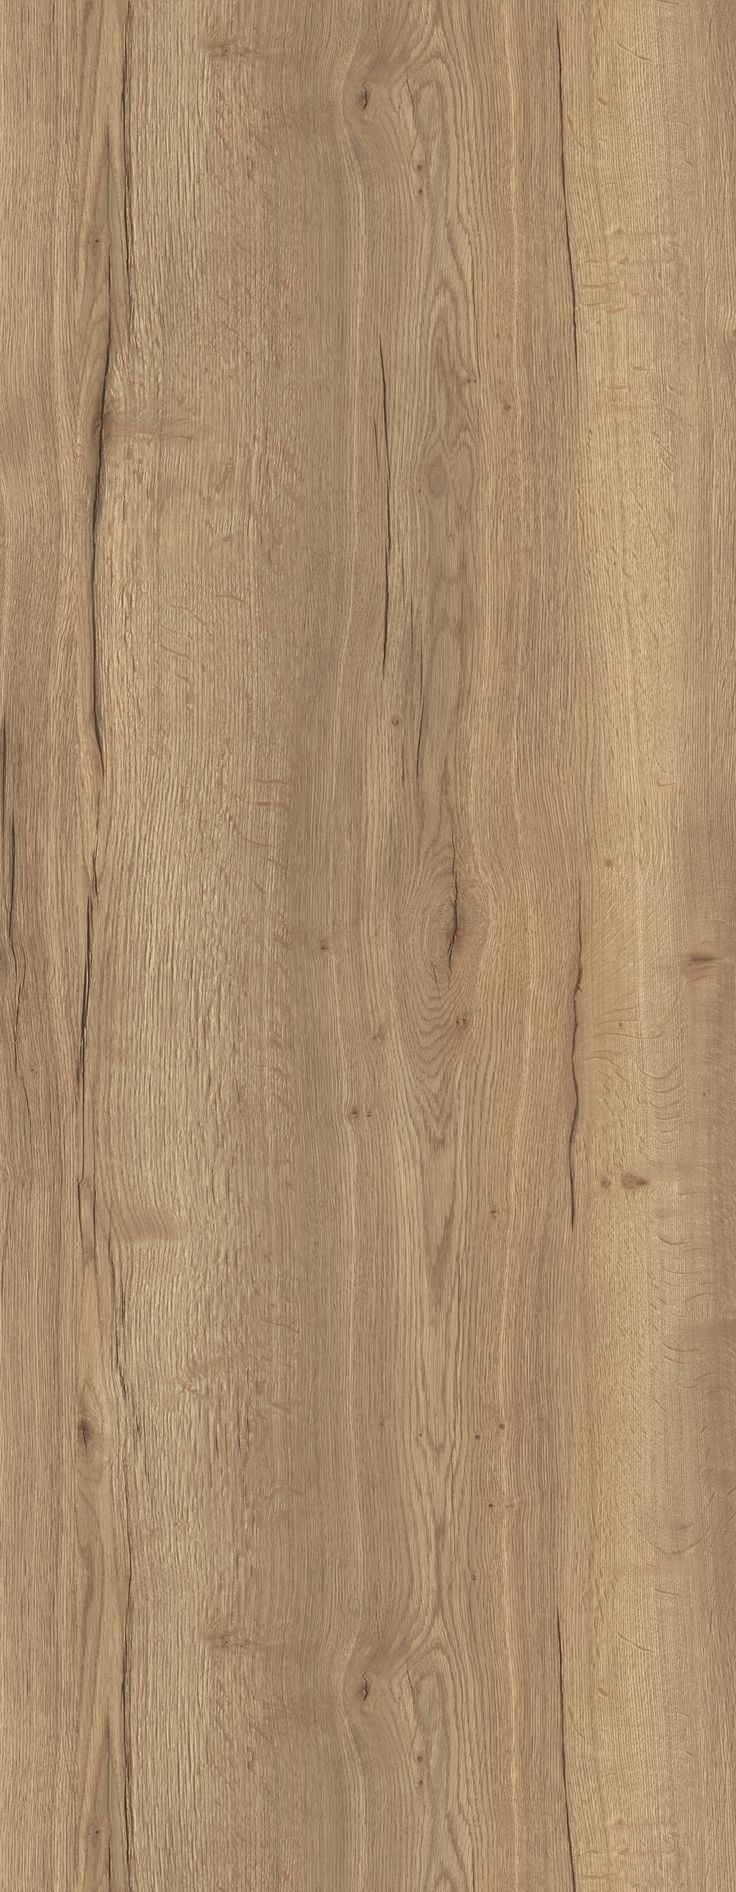 H1180 st37 natural halifax oak is a rustic style decor in for Nature flooring